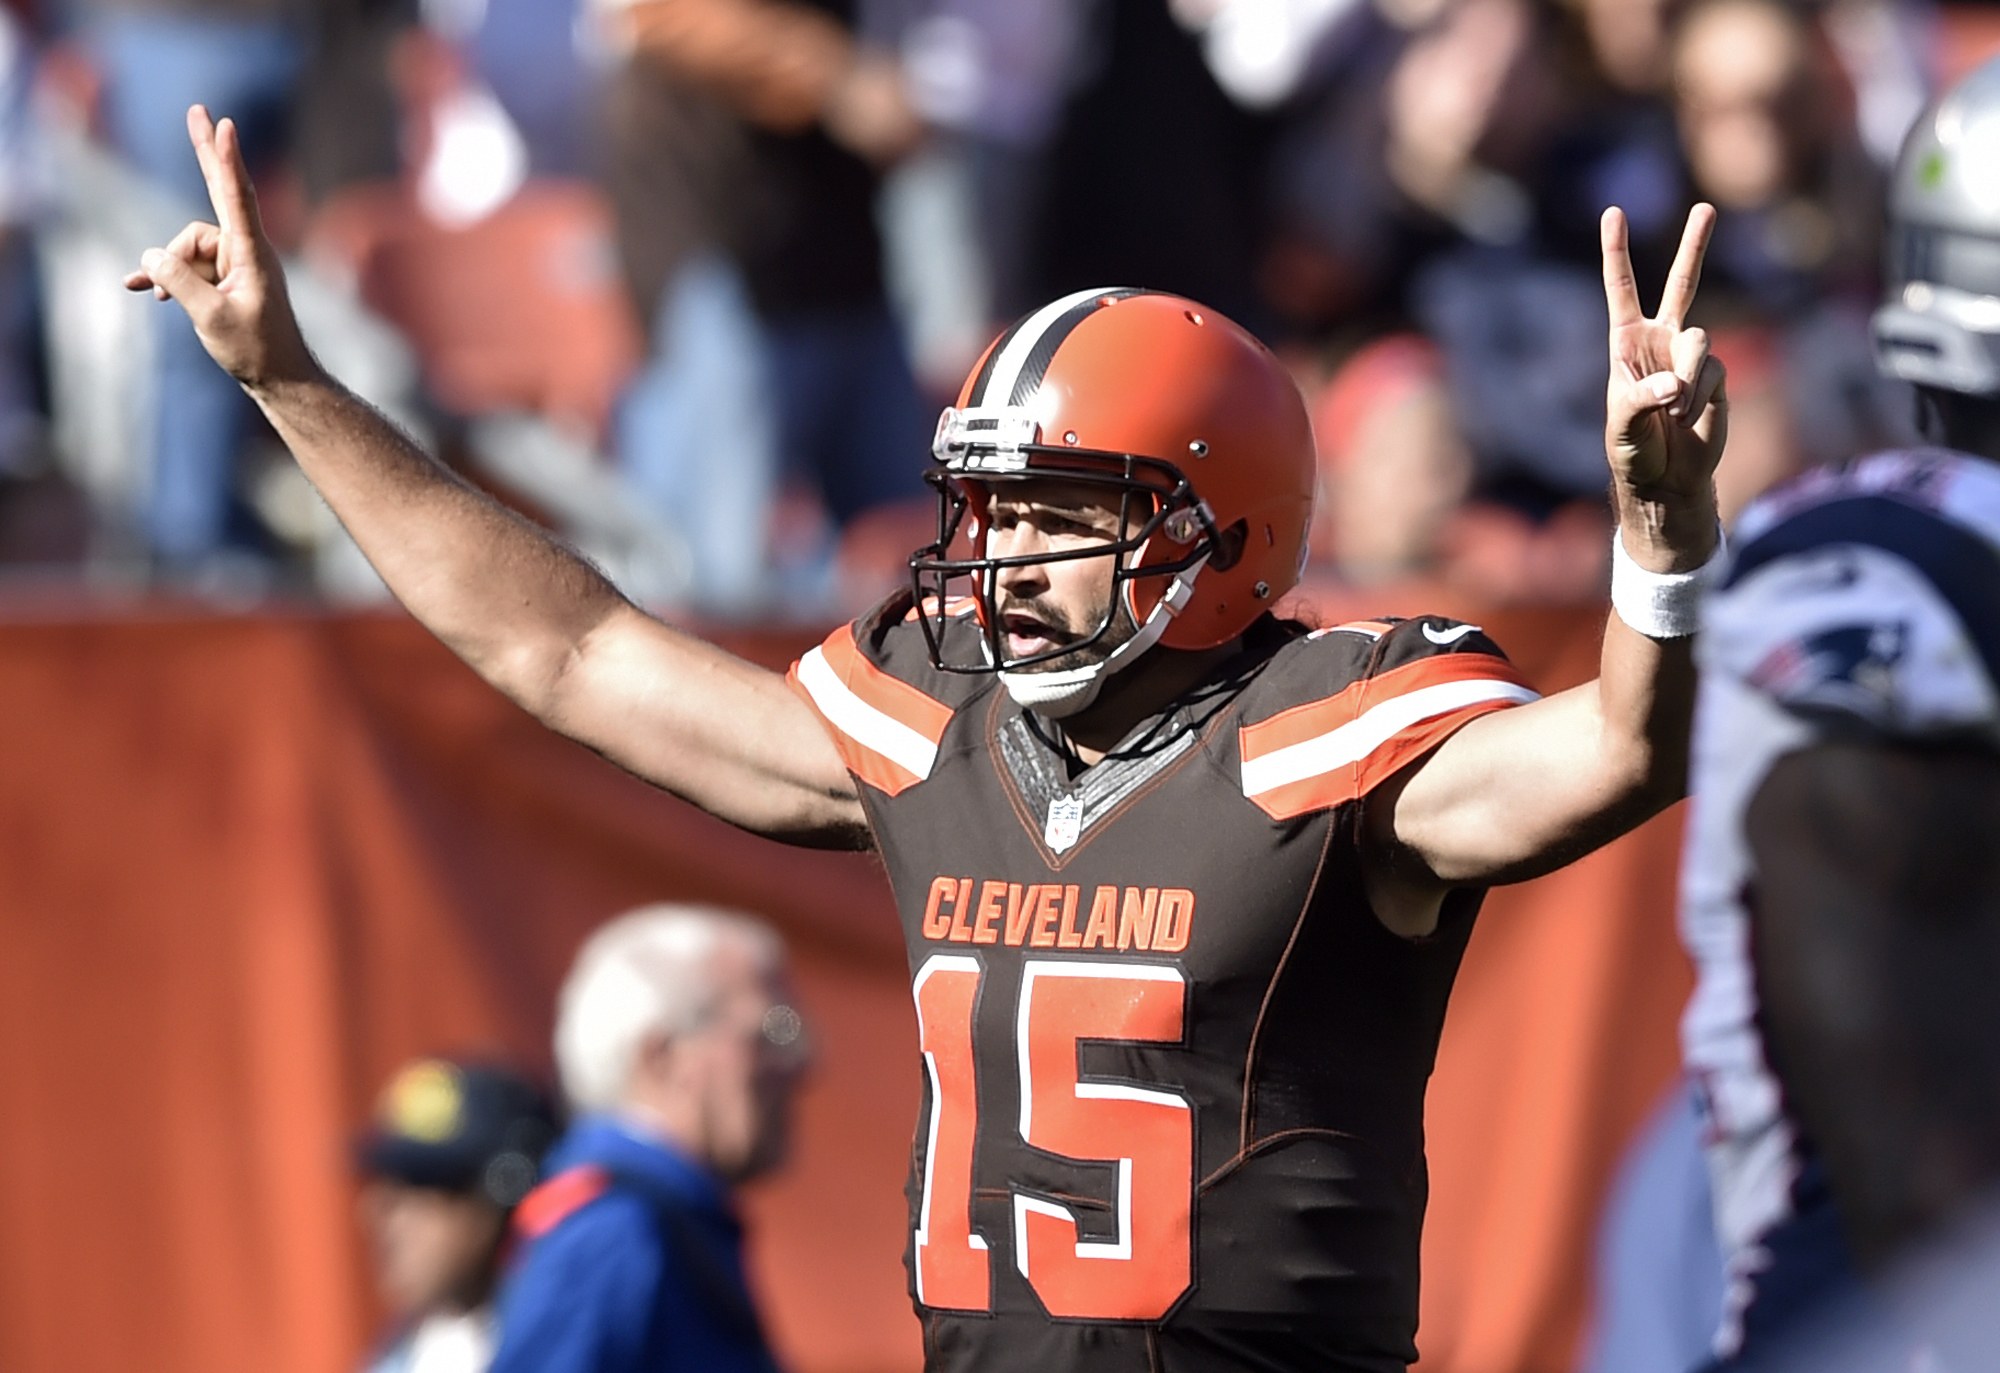 Cleveland Browns quarterback Charlie Whitehurst (15) celebrates a touchdown catch against the New England Patriots in the second half of an NFL football game, Sunday, Oct. 9, 2016, in Cleveland. (AP Photo/David Richard)